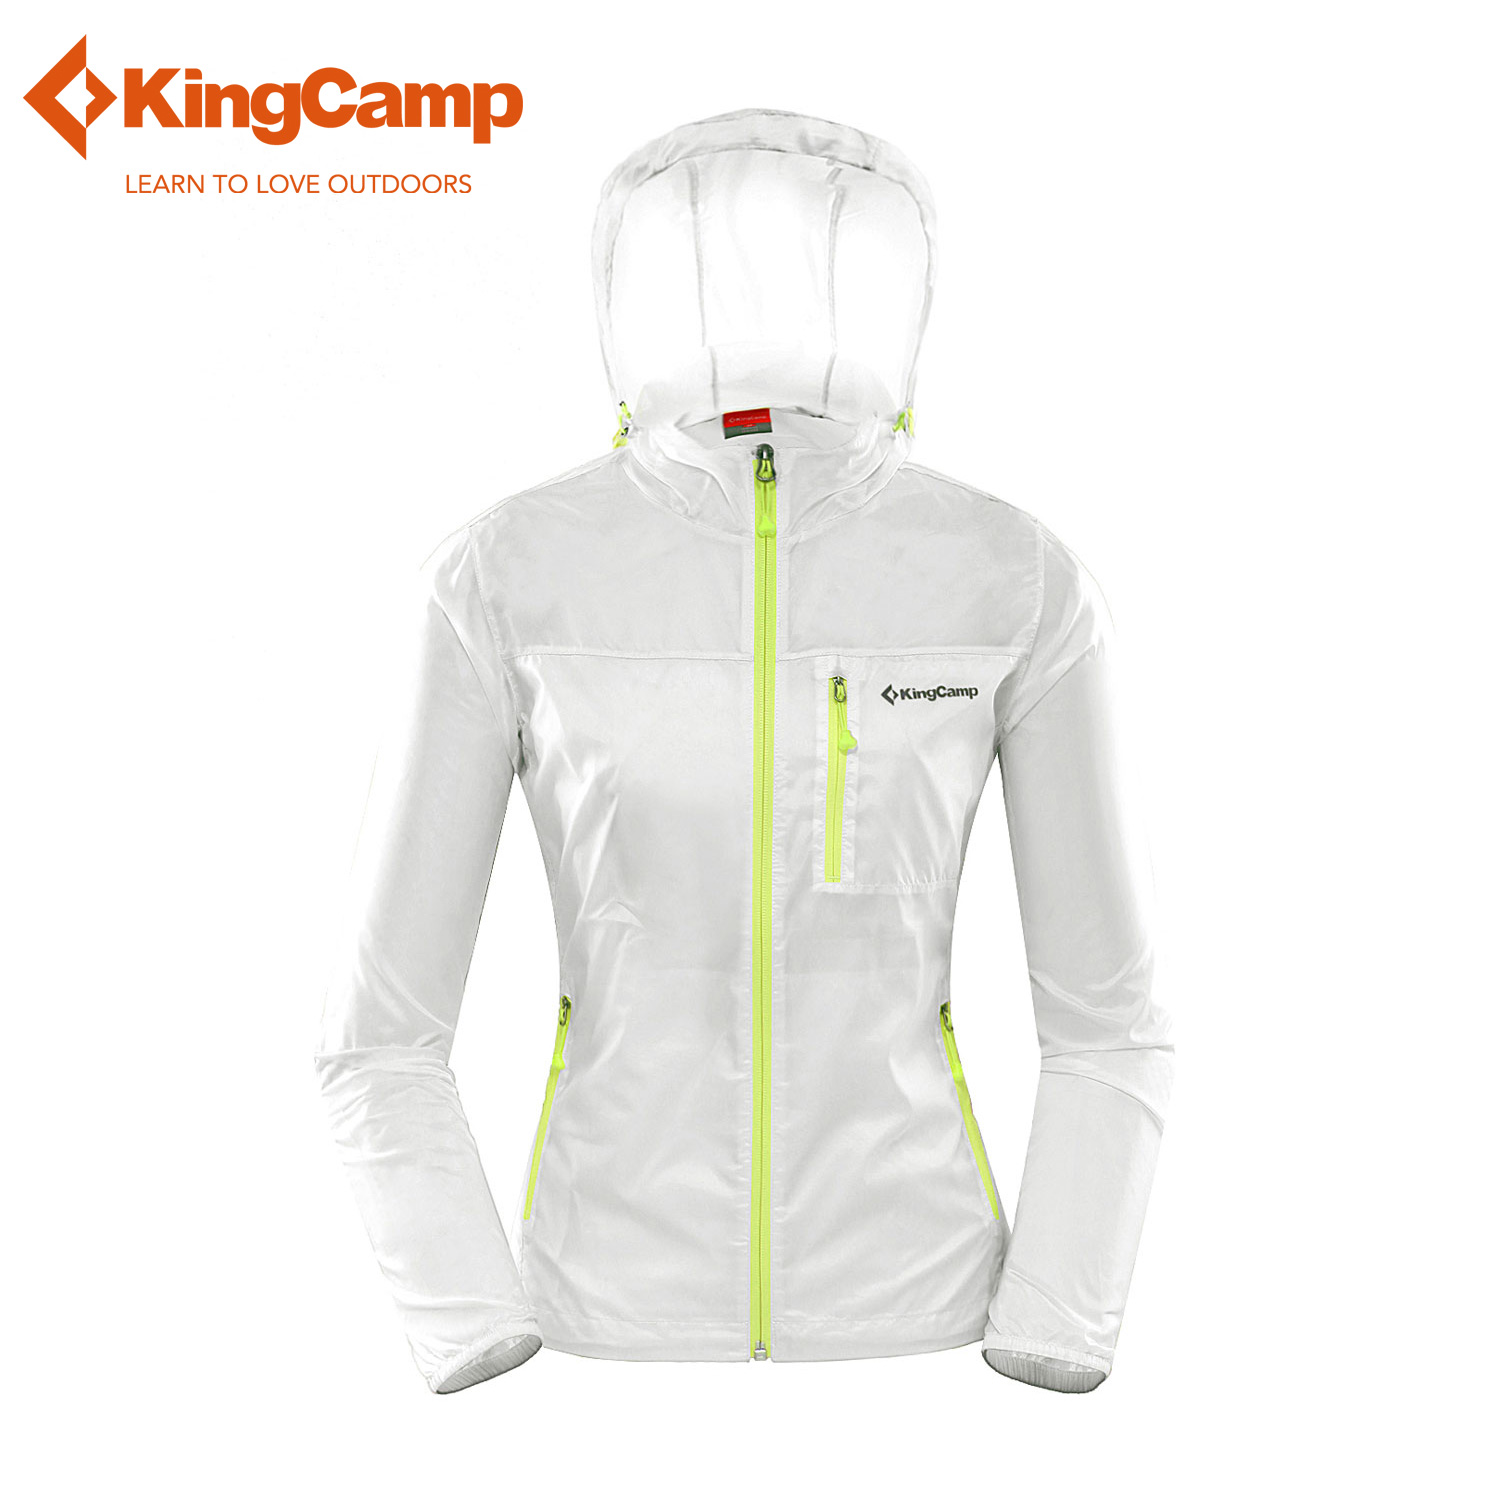 Womens Running Jackets Promotion-Shop for Promotional Womens